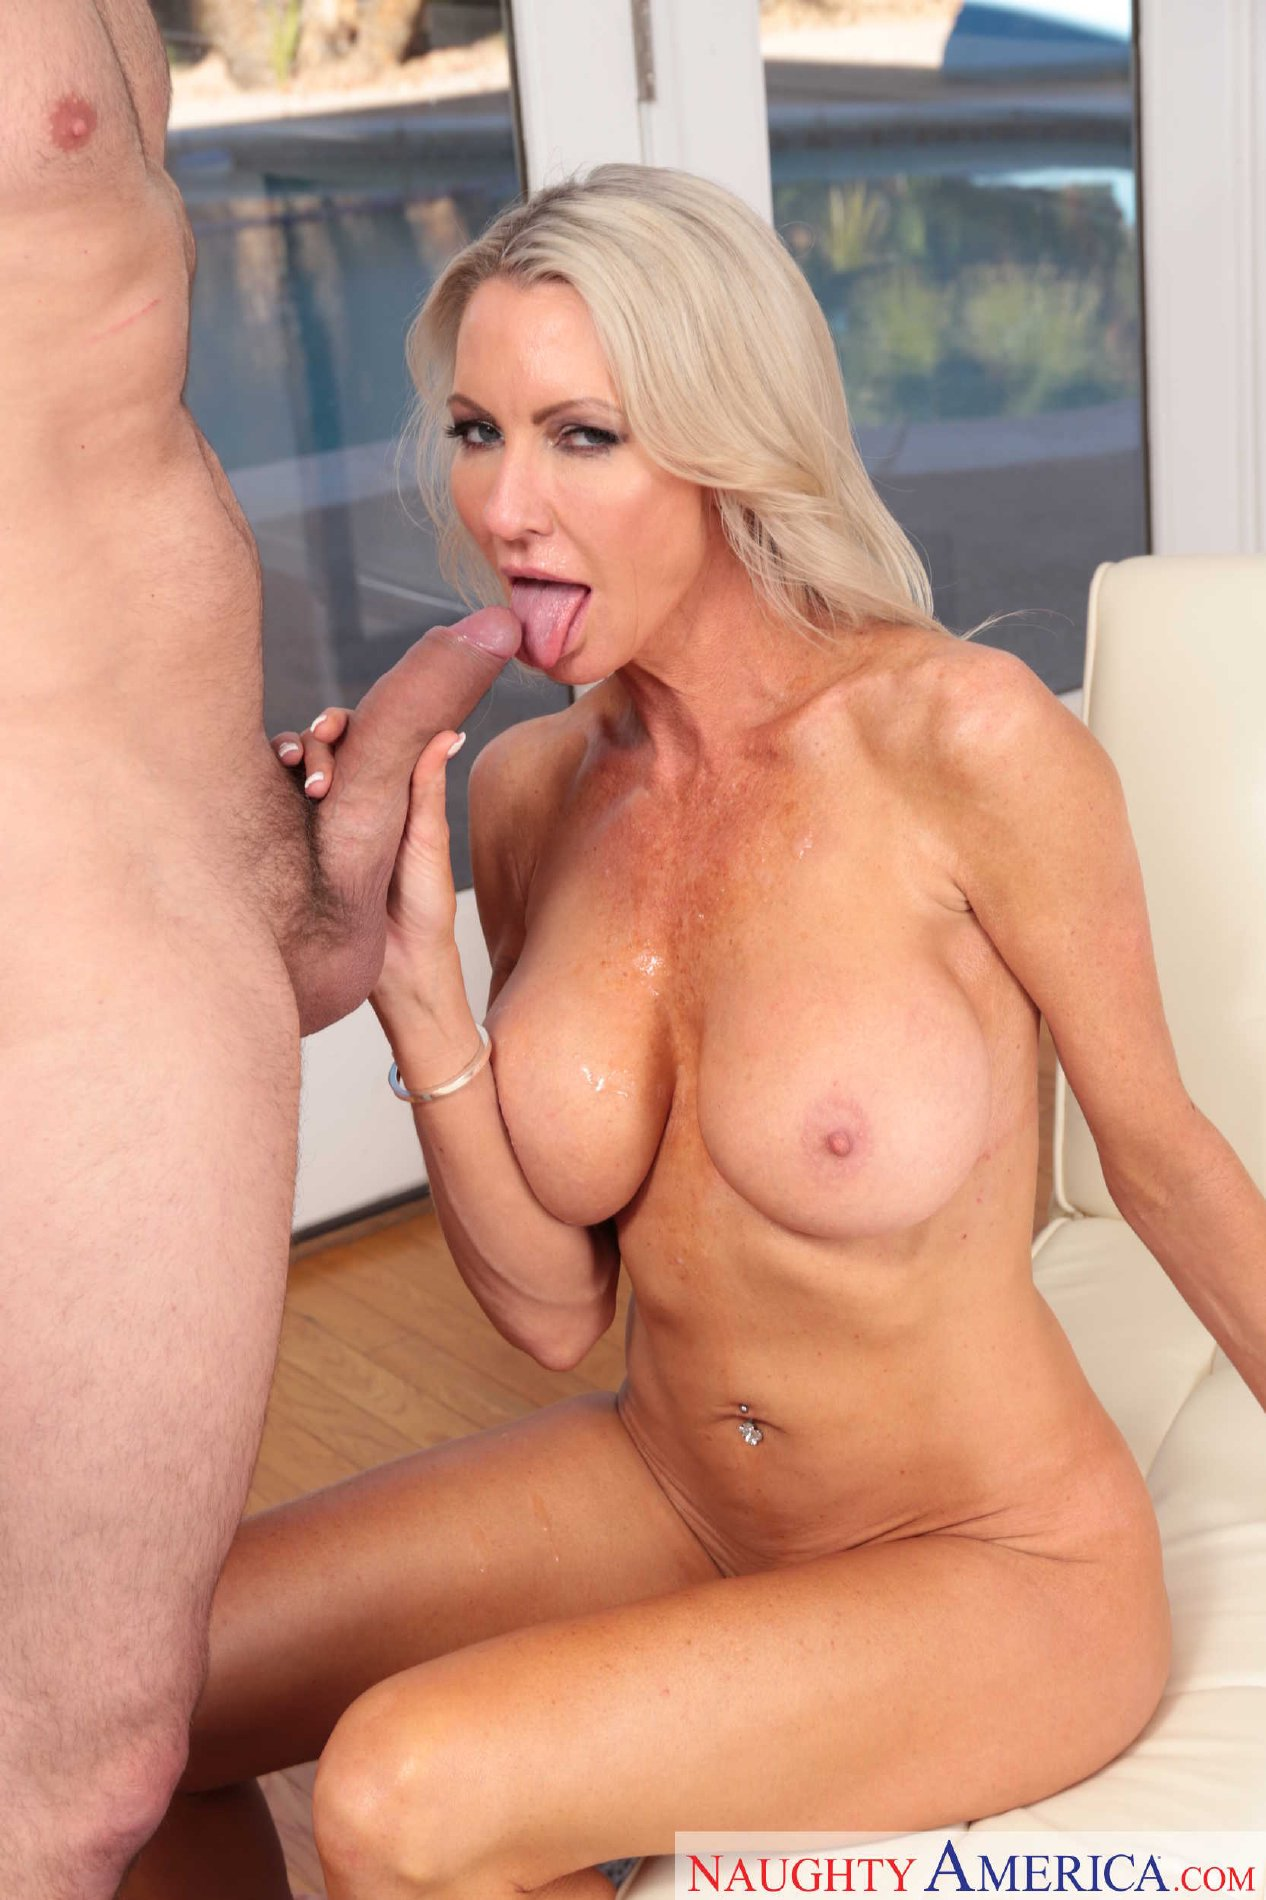 Porn star emma starr milf excited too